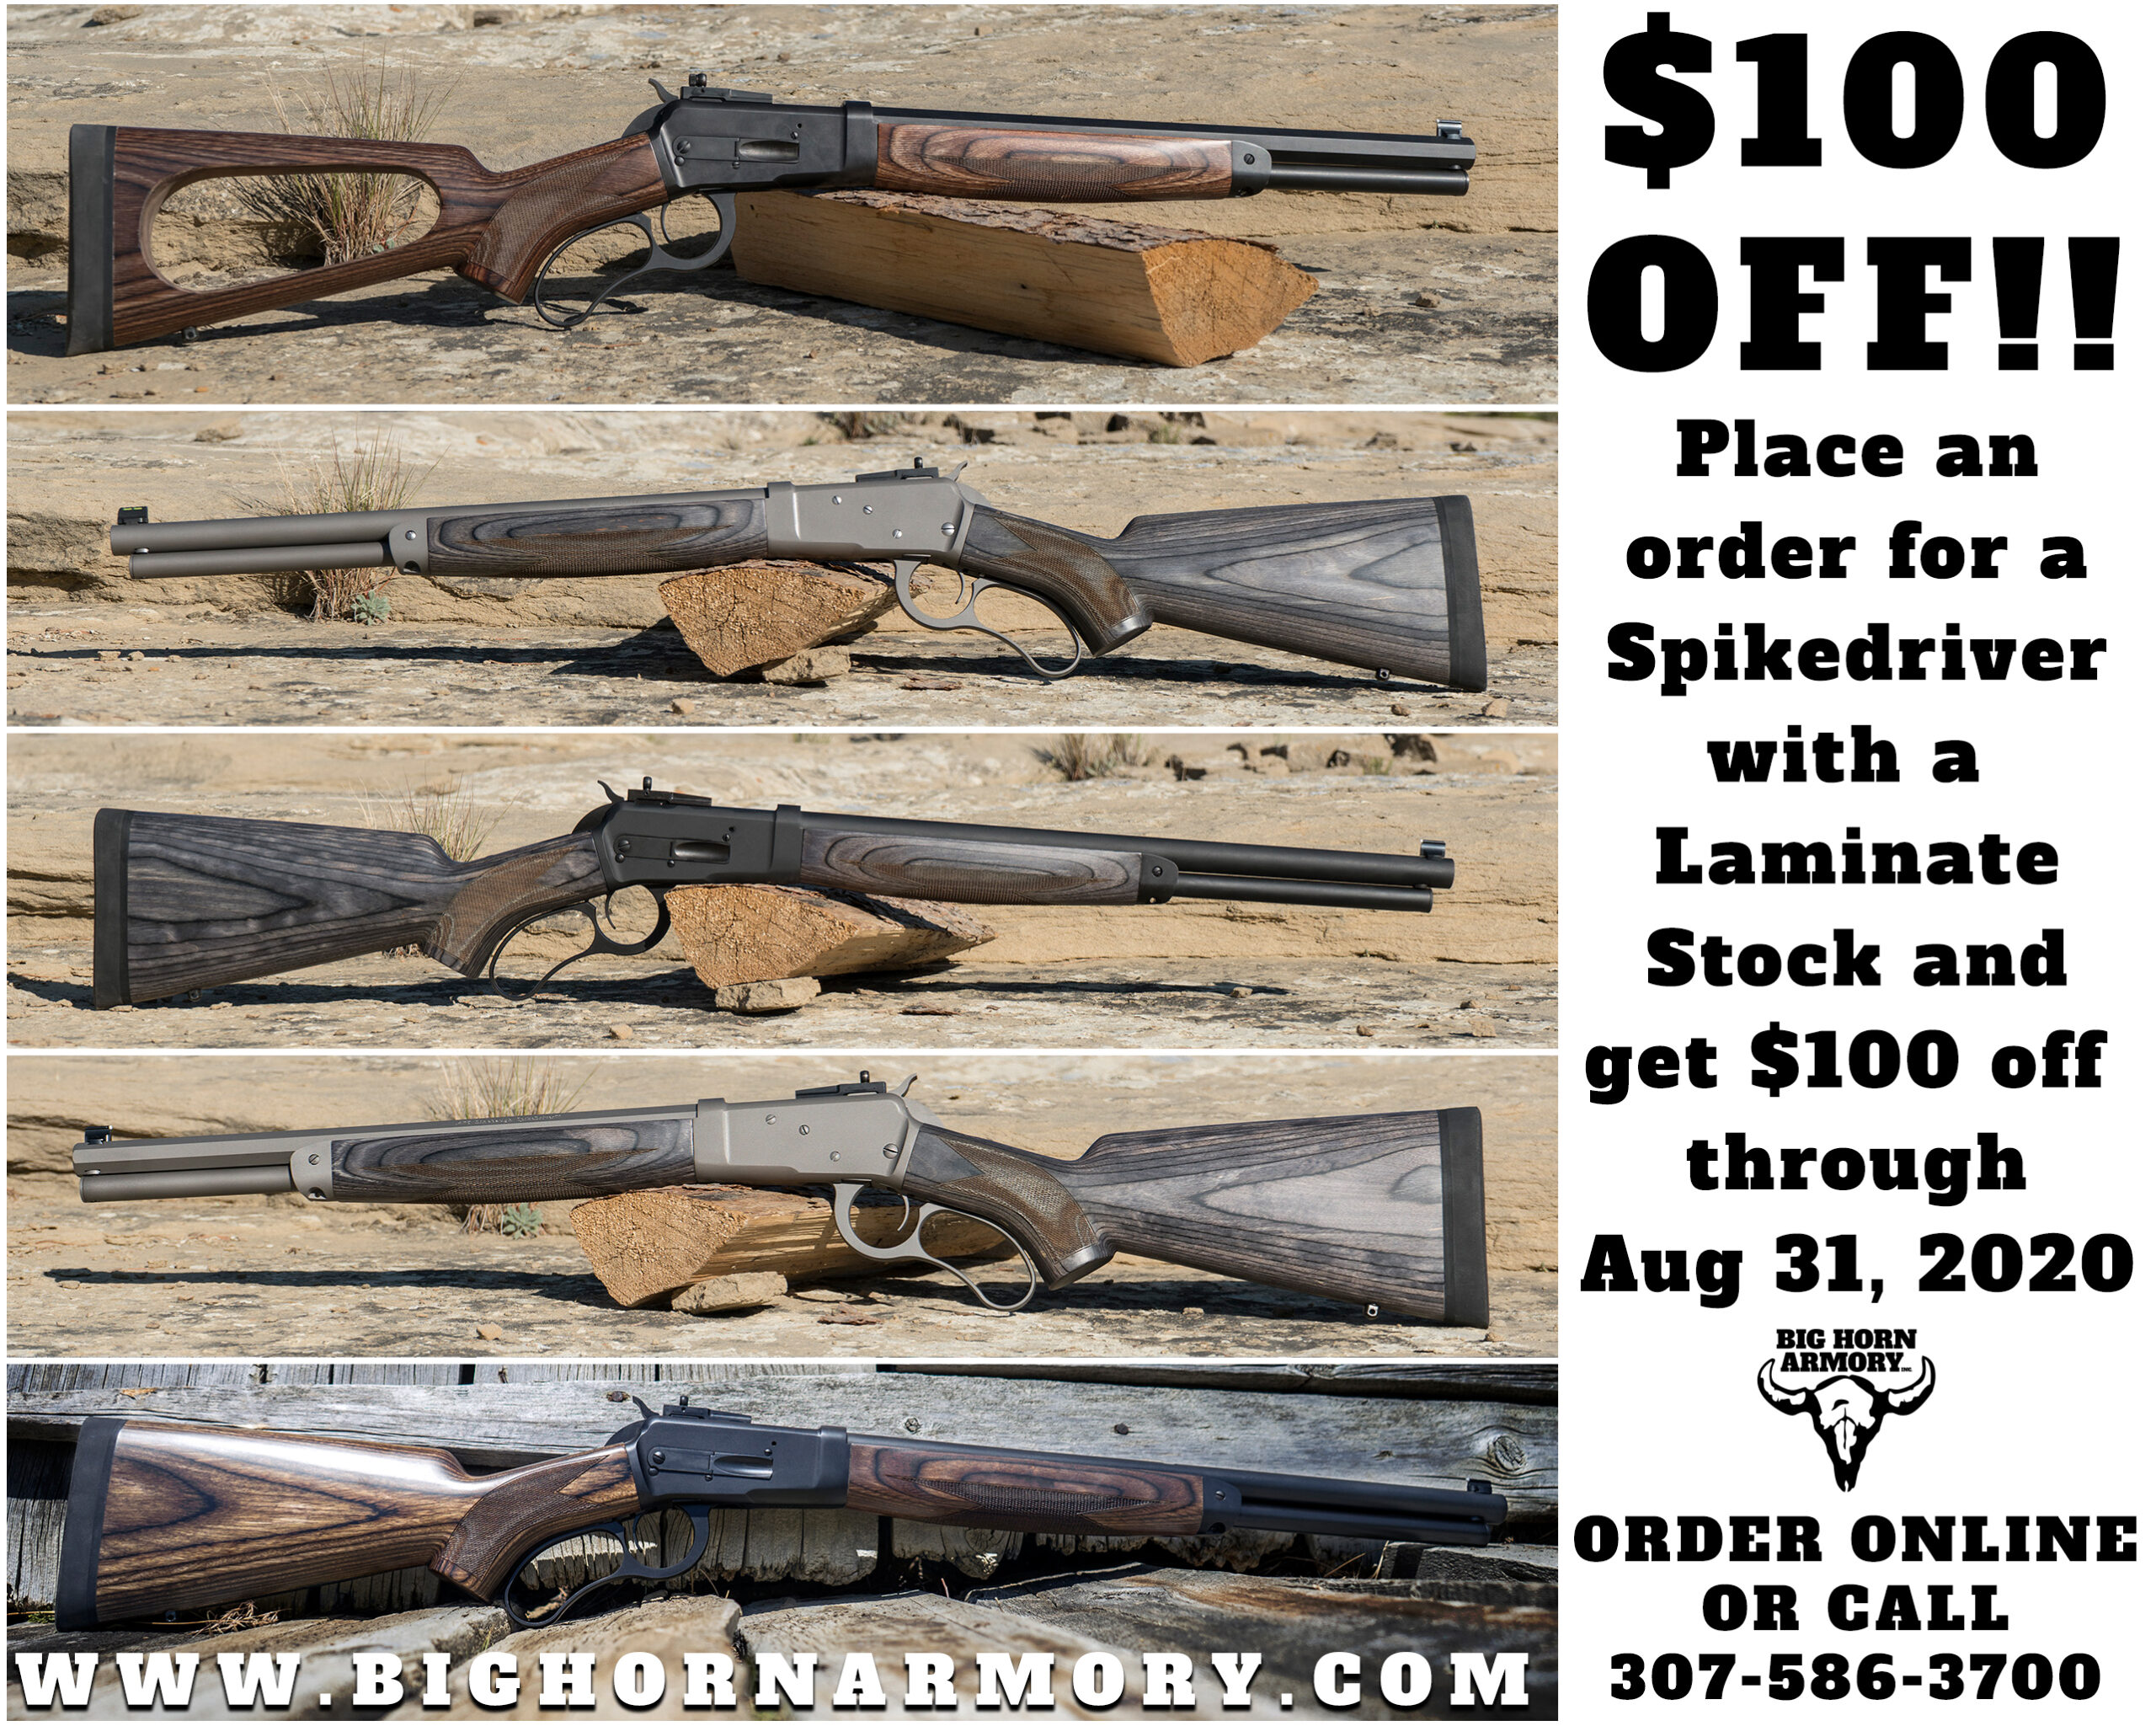 Big Horn Armory (BHA) Offering Several Summer Promos